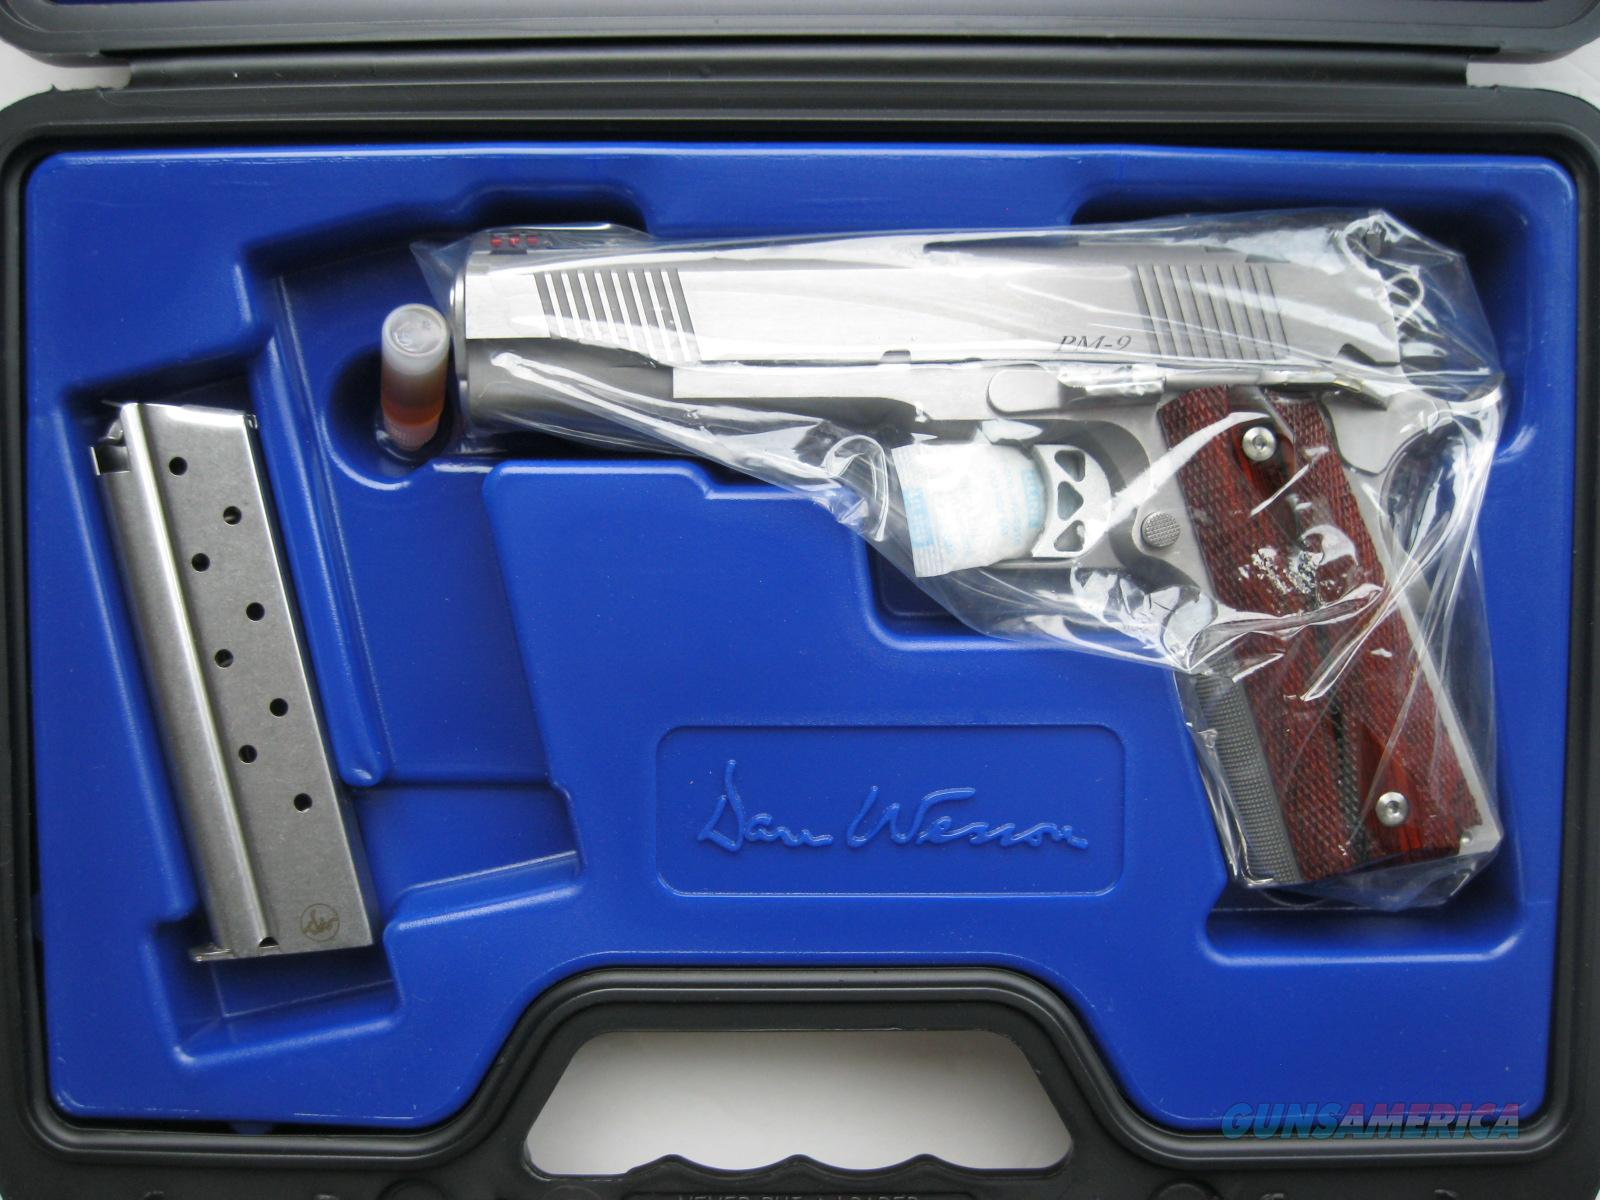 """Dan Wesson Pointman 9mm PM9 Stainless 1911 5"""" CZ-USA 01909 *NEW*  Guns > Pistols > Dan Wesson Pistols/Revolvers > 1911 Style"""